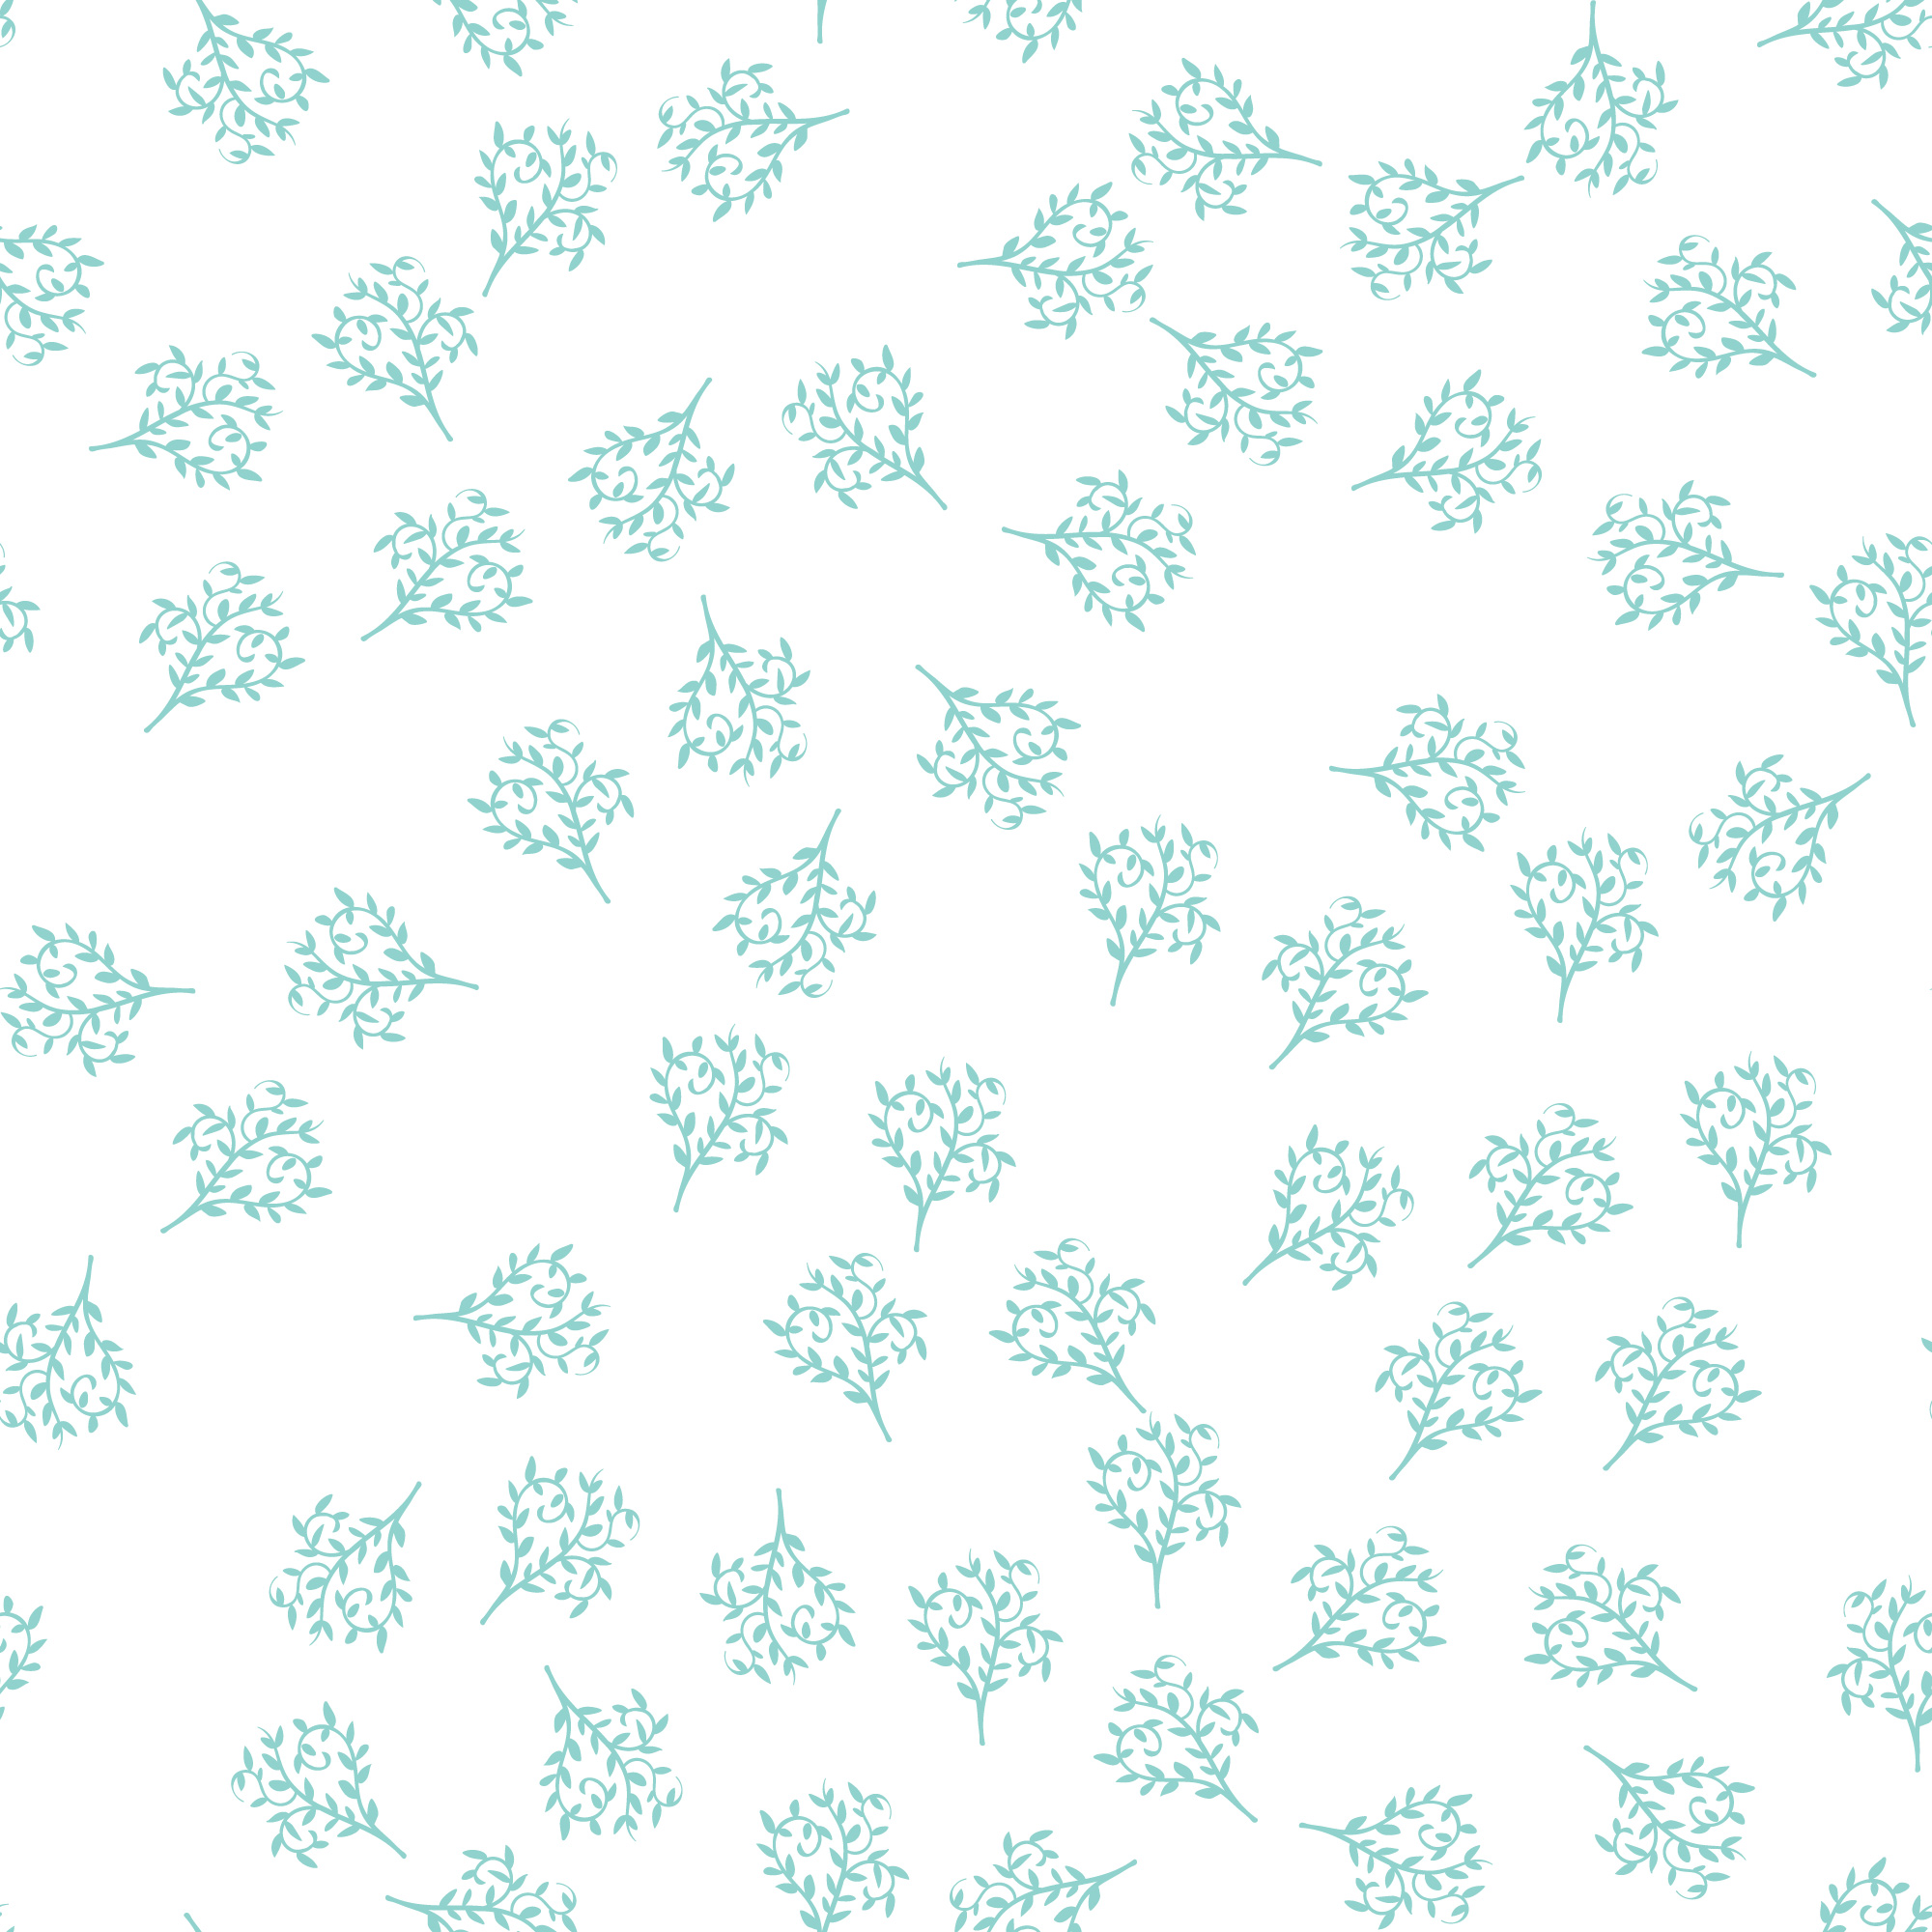 Delicate blue floral pattern